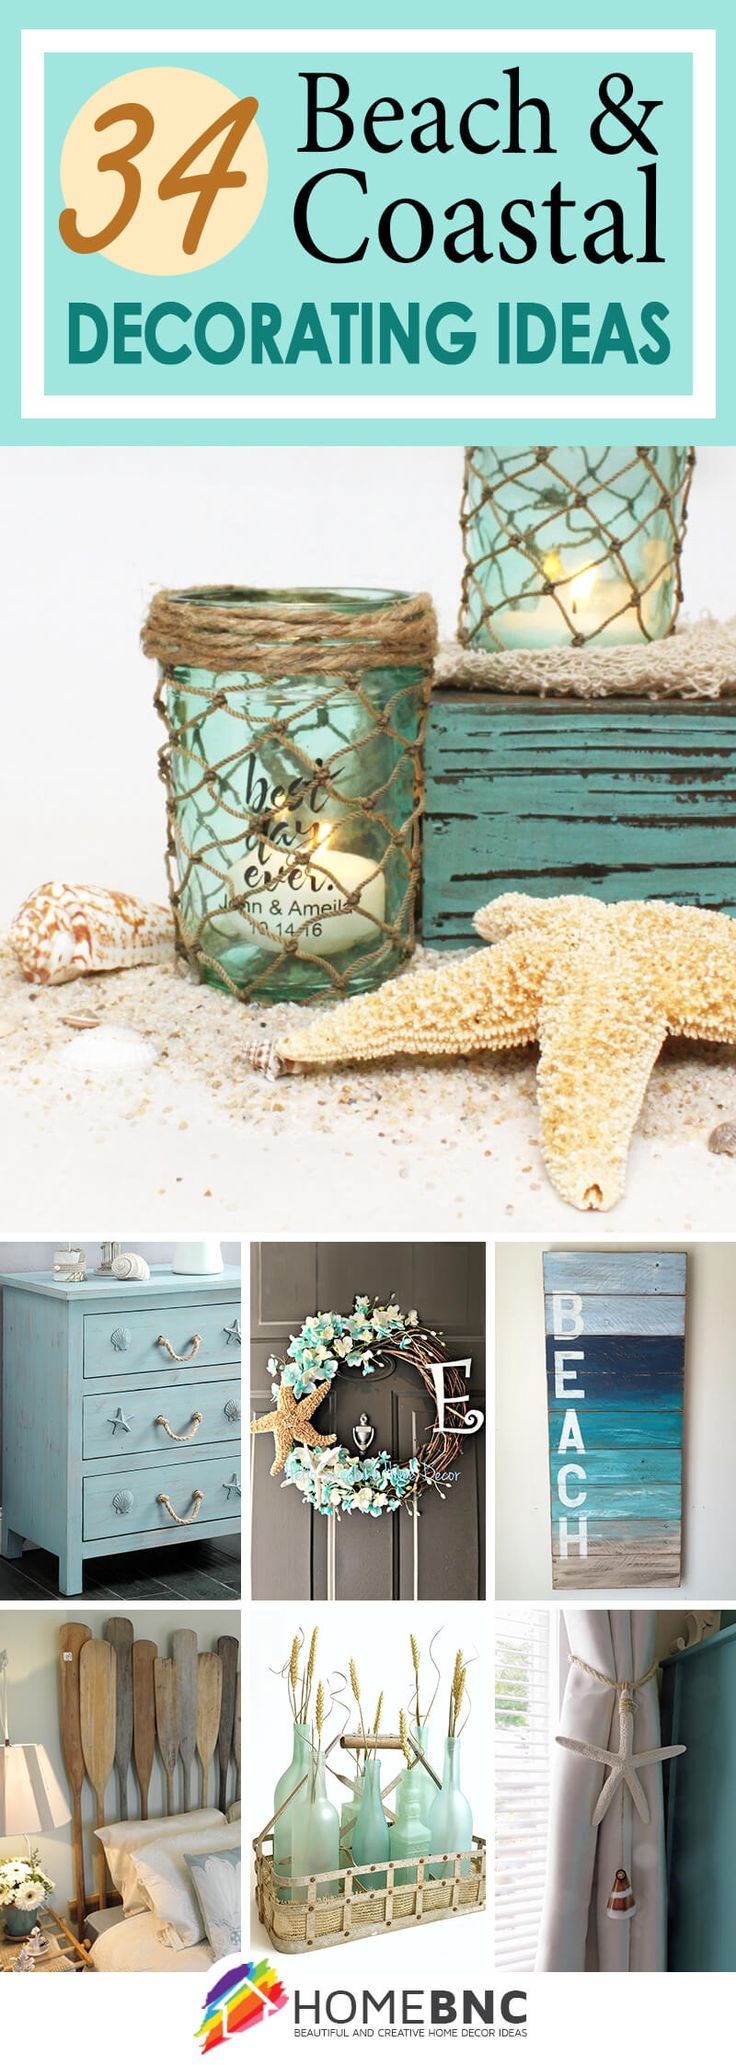 34 Beach and Coastal Decorating Ideas You ll Adore. Best 25  Nautical decor ideas ideas on Pinterest   Nautical